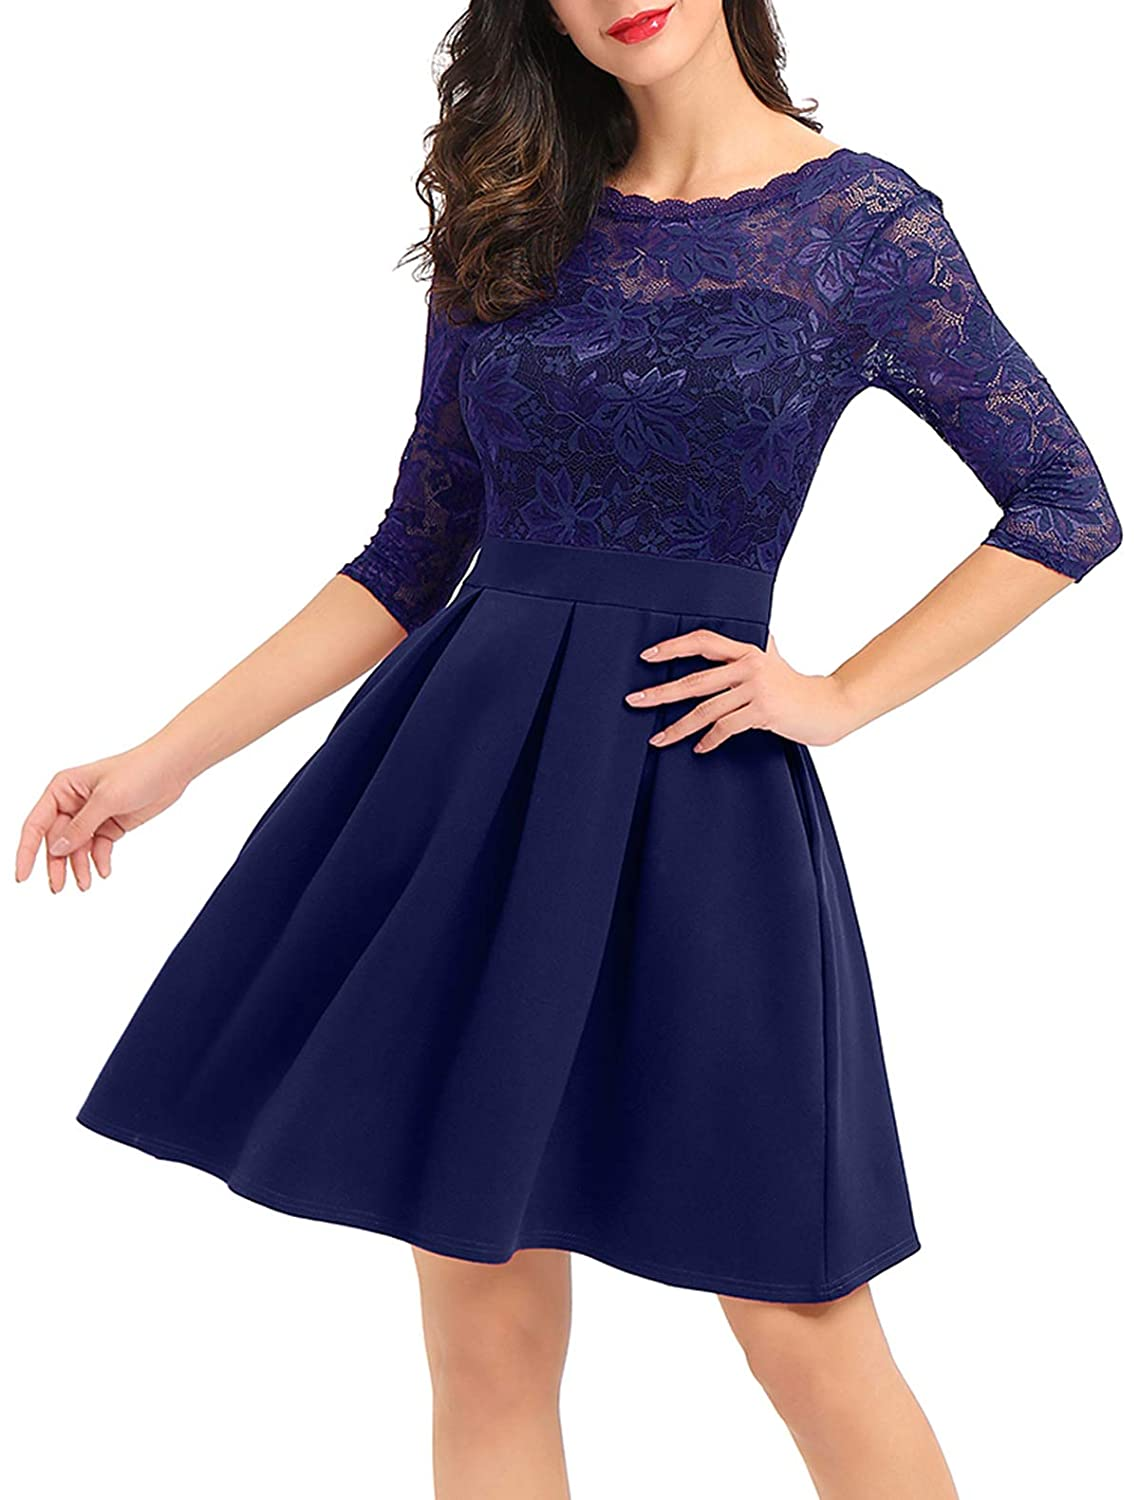 c56fa68428d A Line Cocktail Dresses With Sleeves - Gomes Weine AG